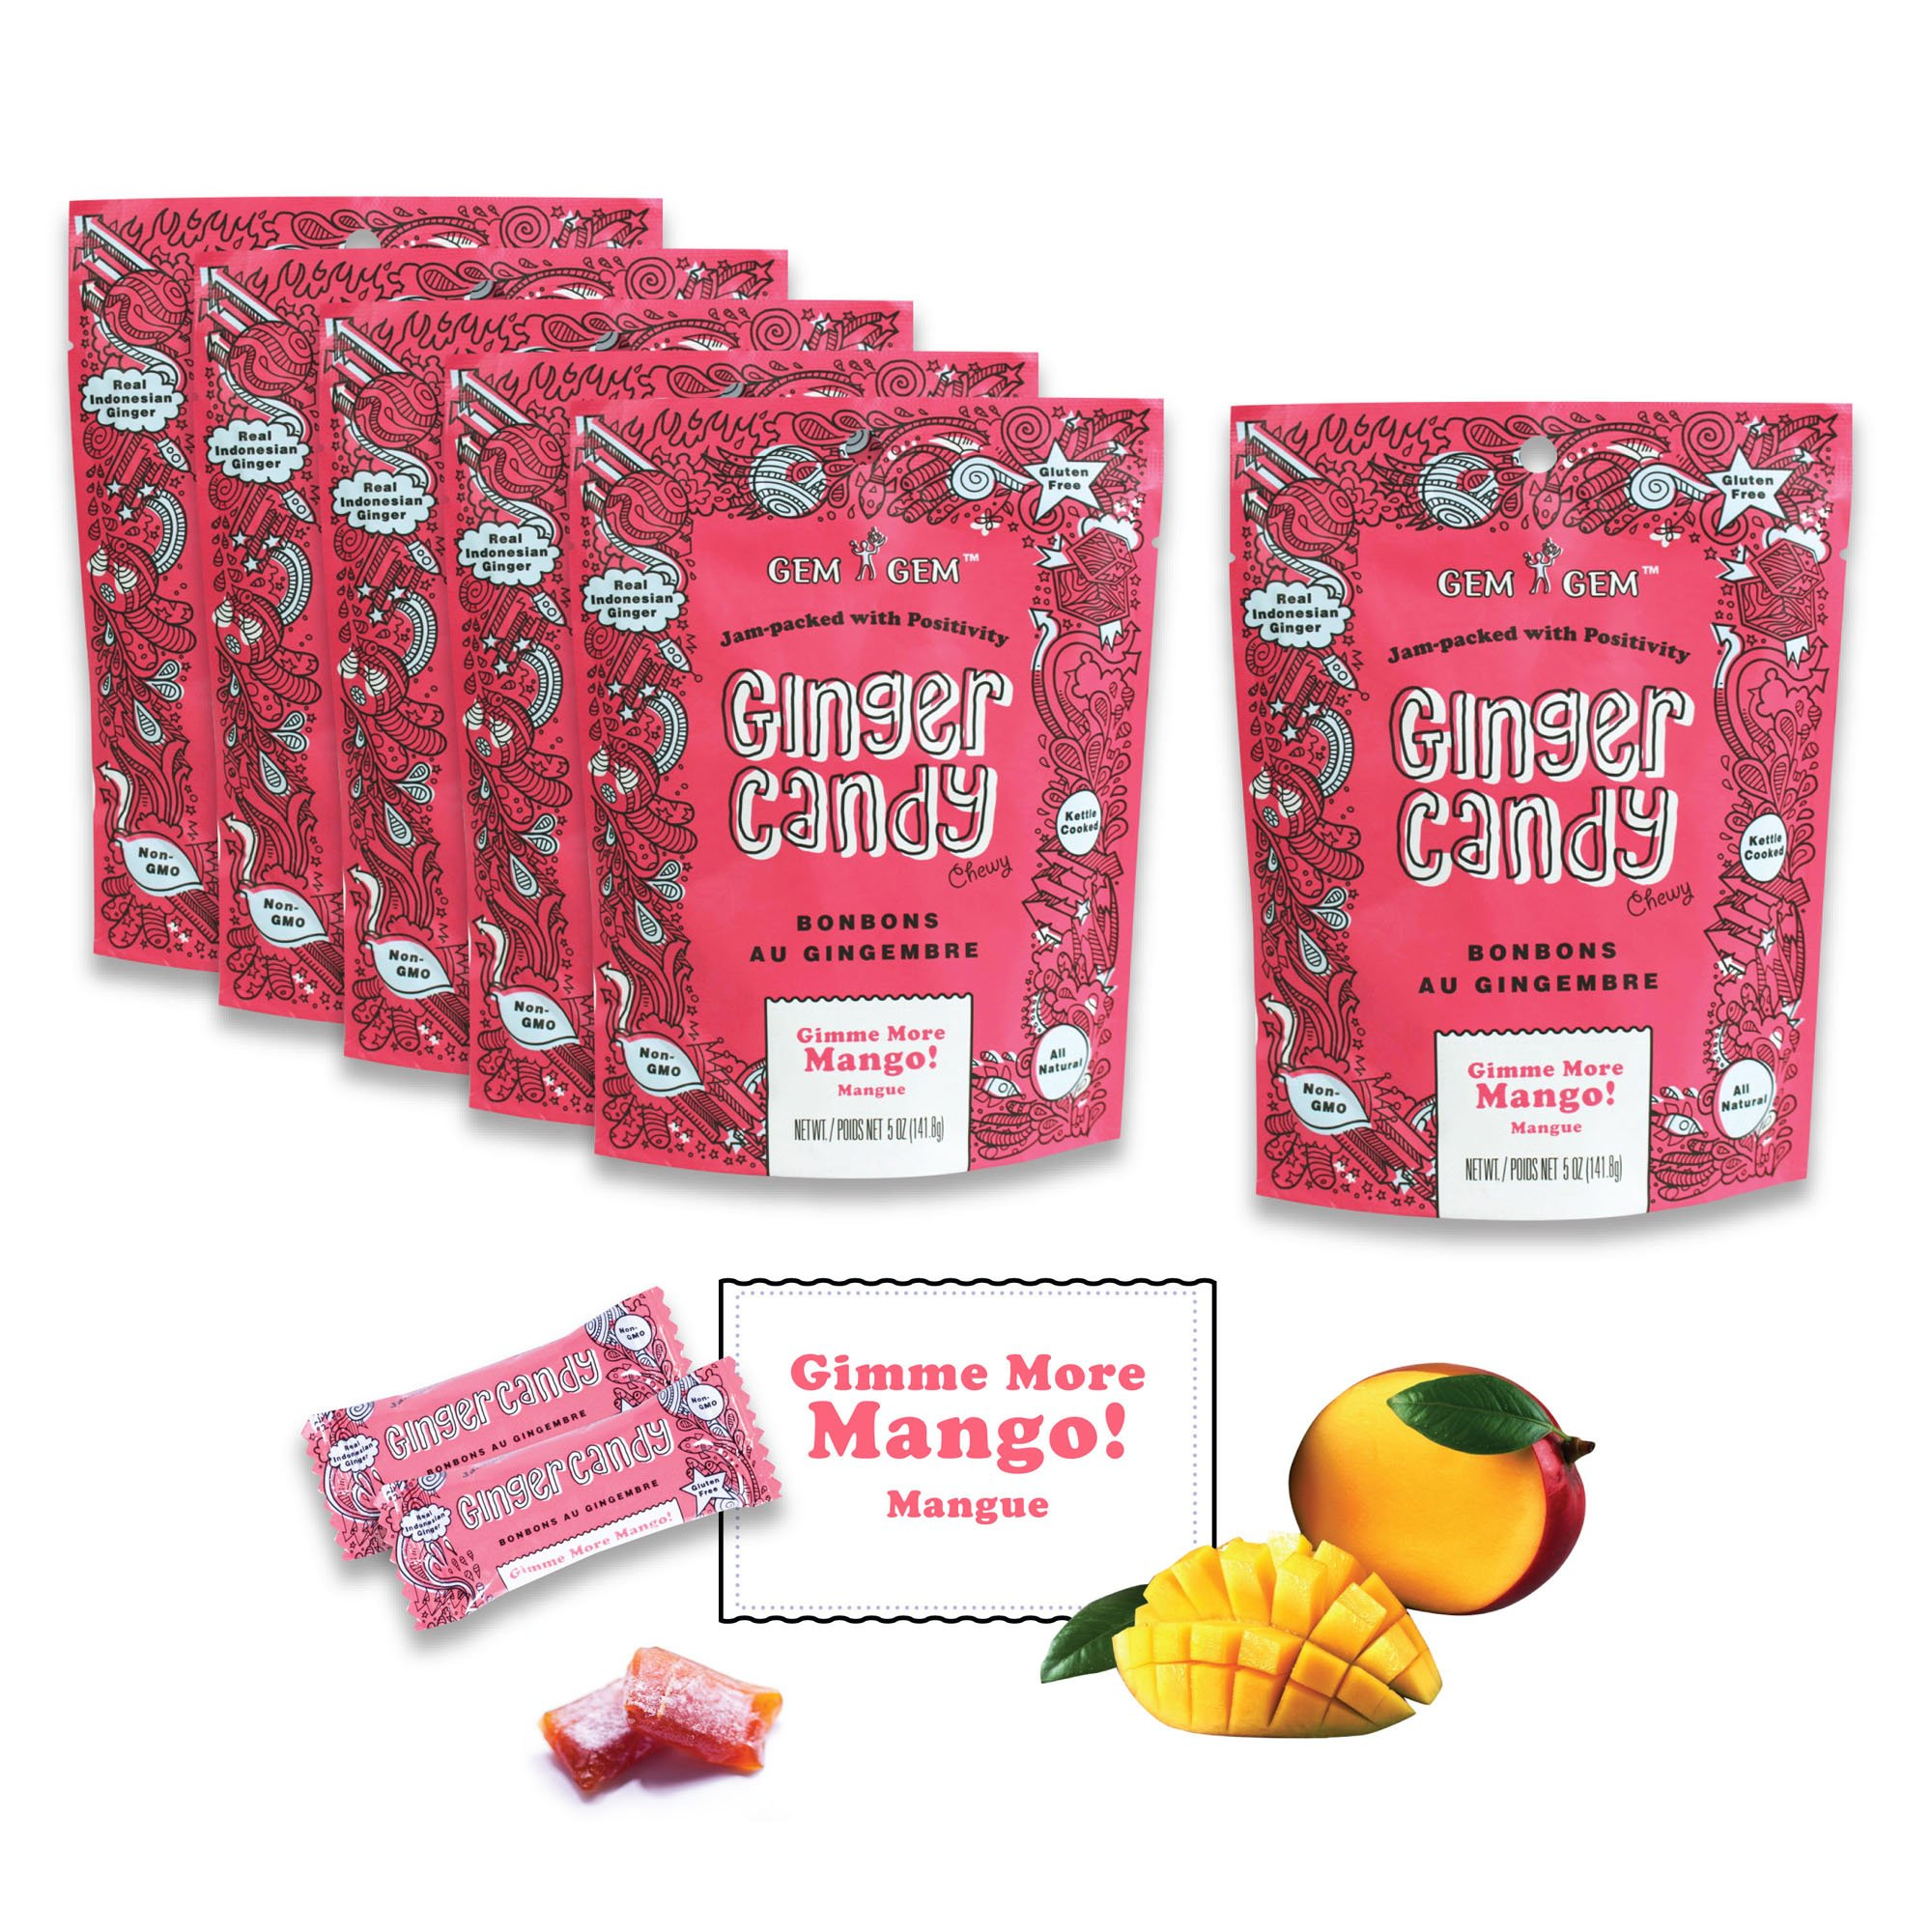 Gem Gem Ginger Candy Chewy Ginger Chews (Mango, 5.0oz, Pack of 6)